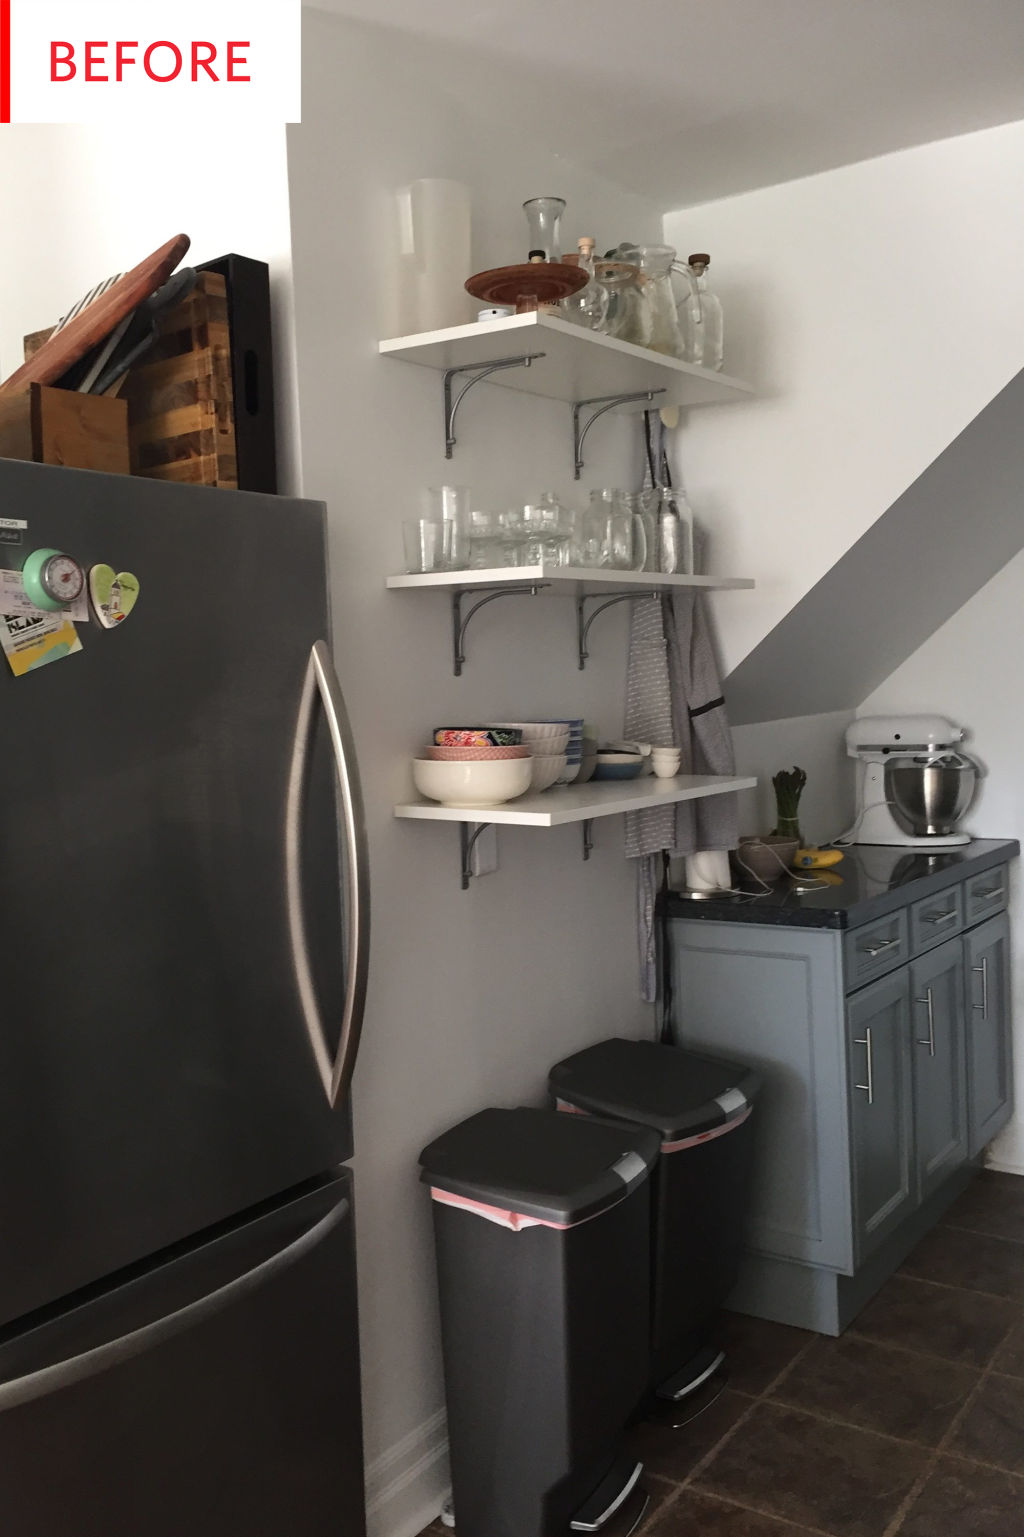 This $350 Kitchen Redo Is Filled with Smart Rental Tricks